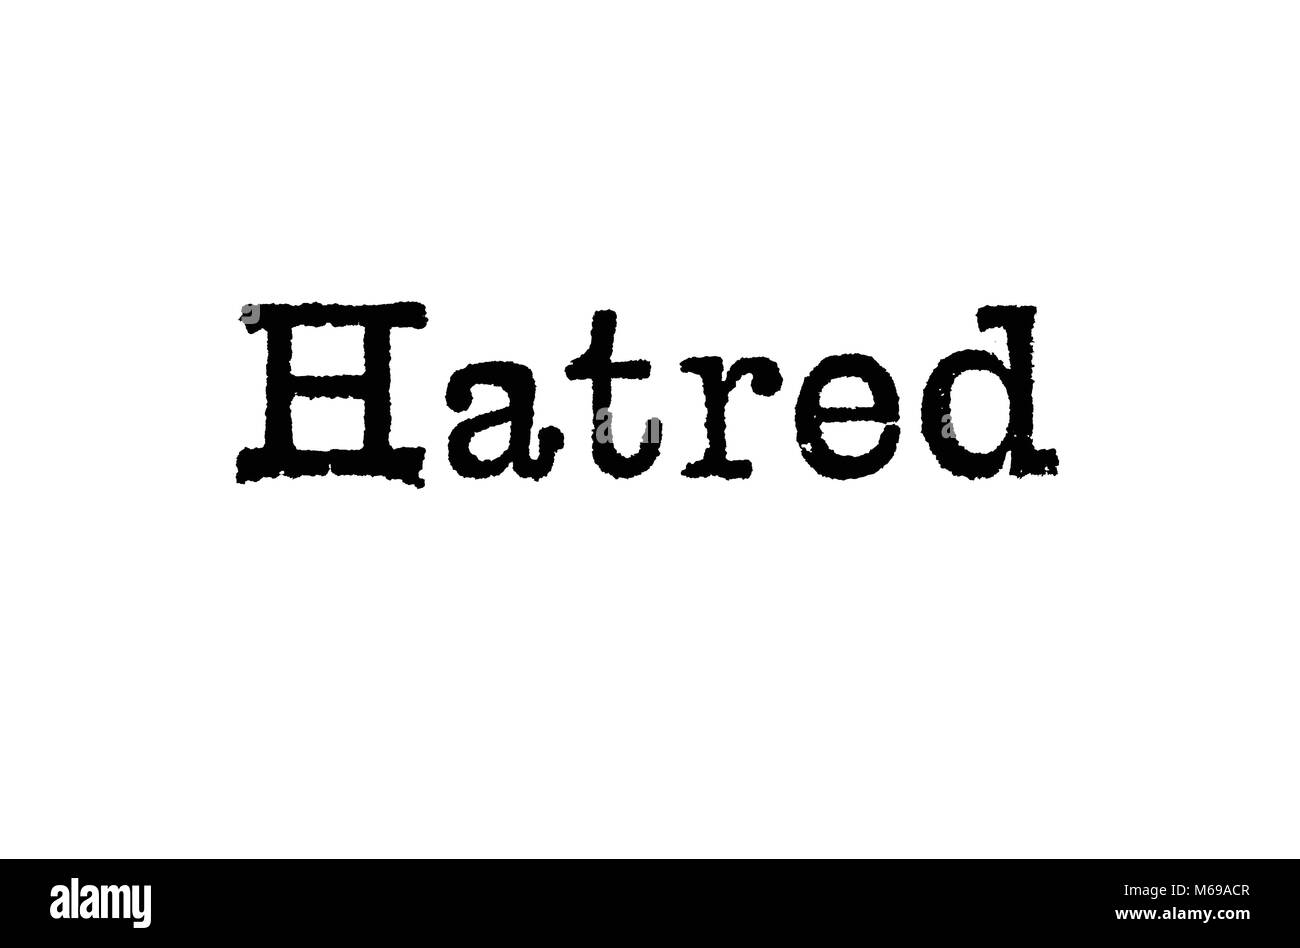 The word Hatred from a typewriter on a white background - Stock Image